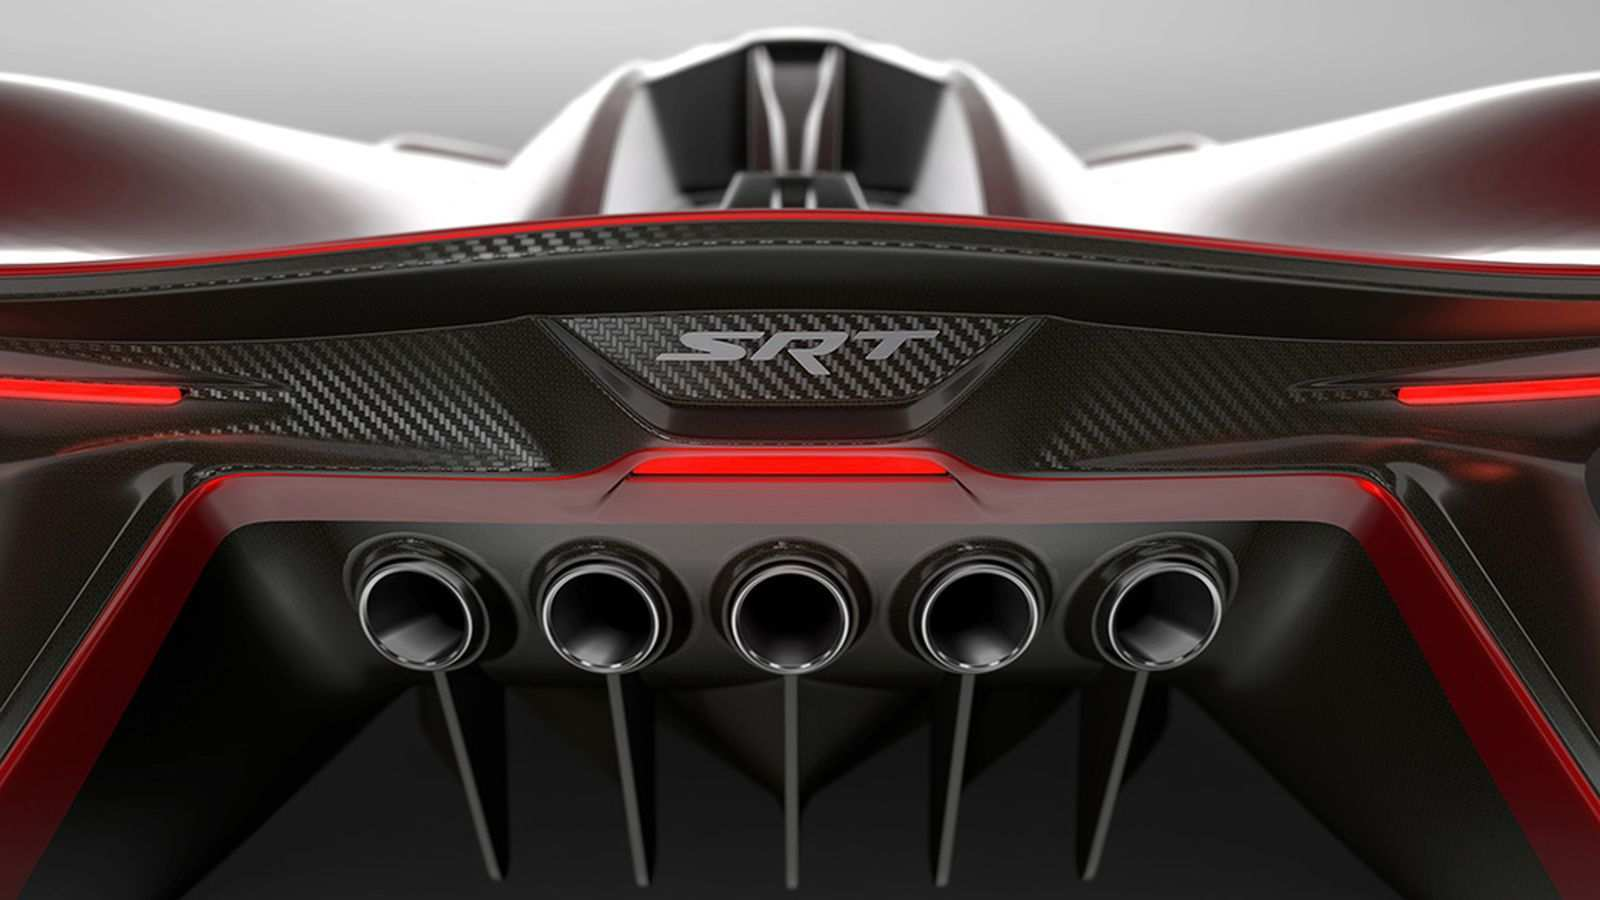 37 Great Dodge Concept Cars 2020 Pictures with Dodge Concept Cars 2020